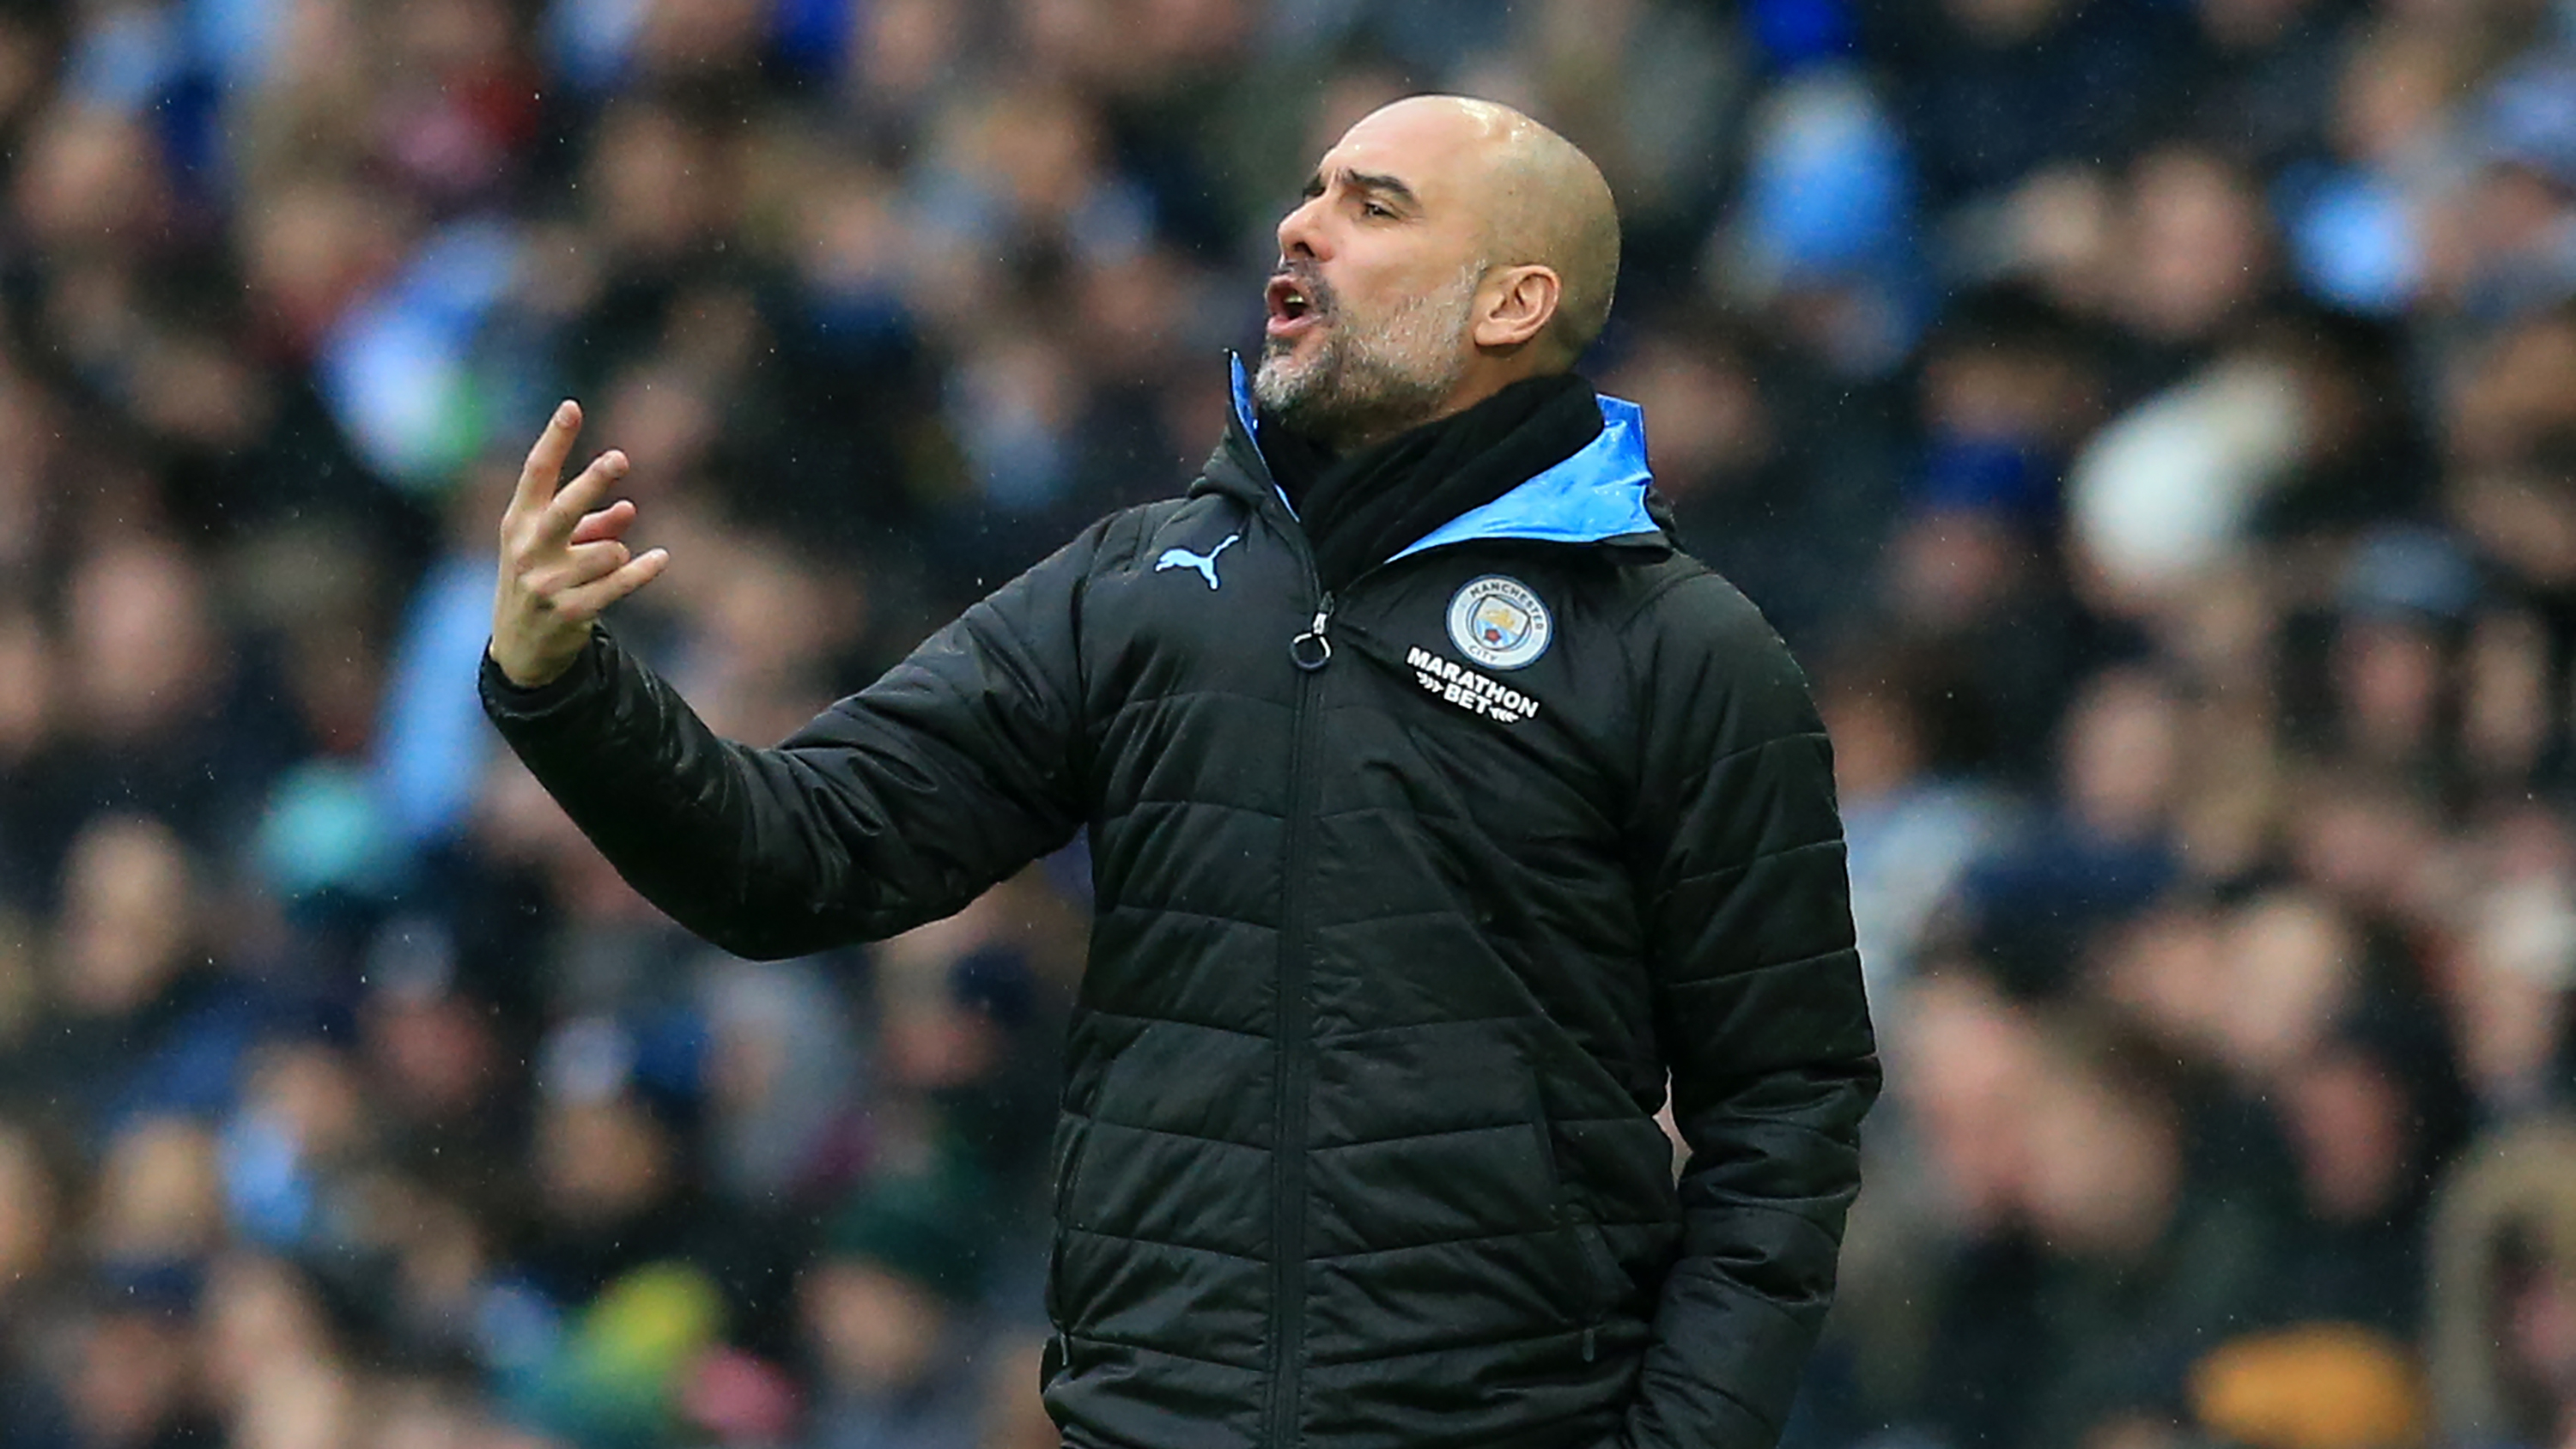 Man City boss Guardiola reveals the titles he aims to win